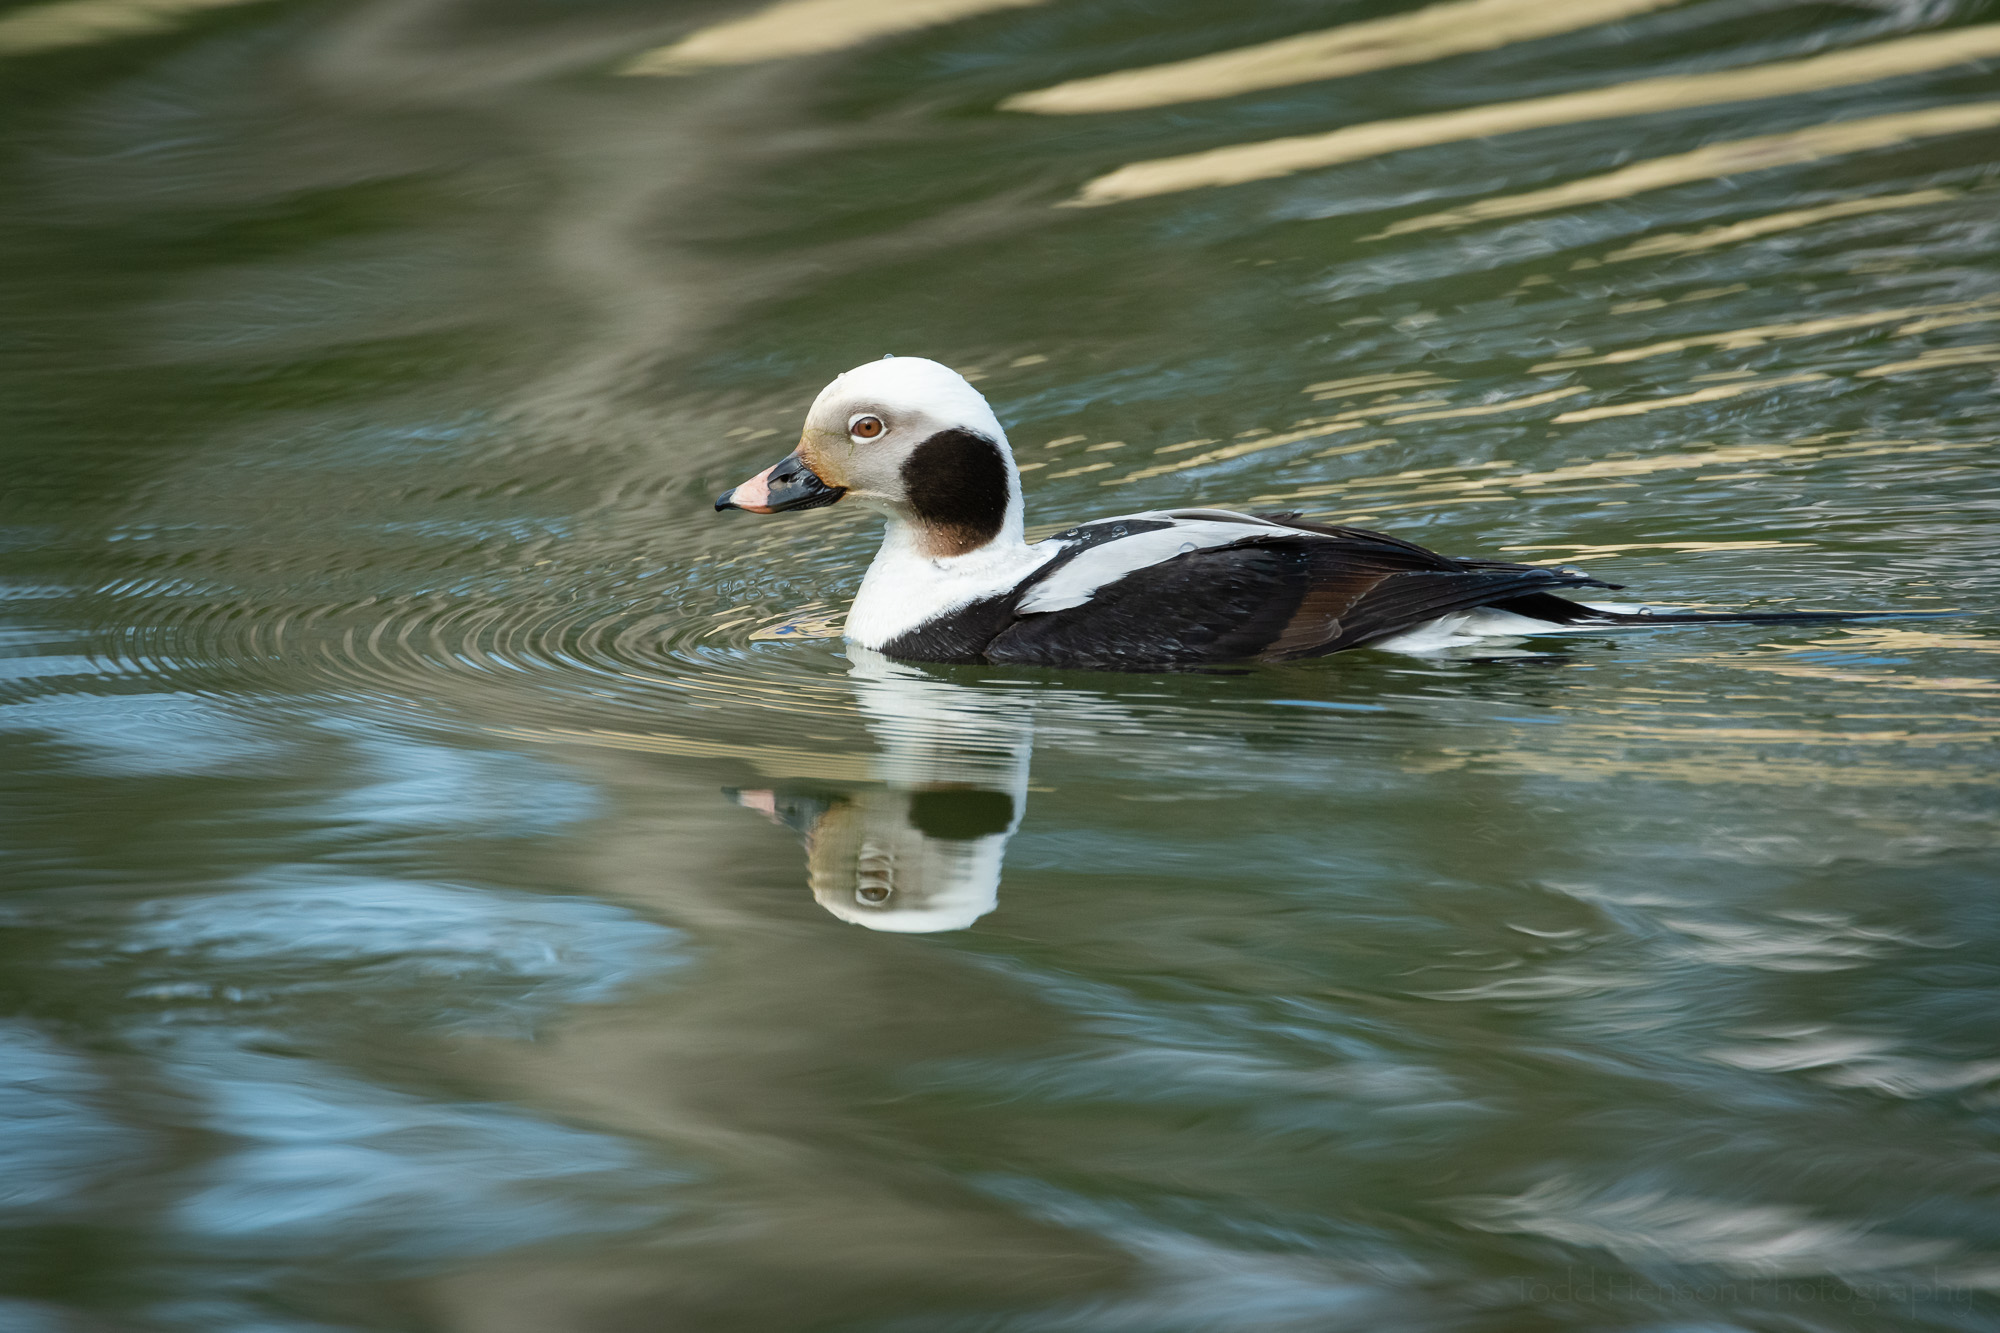 Reflecting on a Long-tailed Duck #1